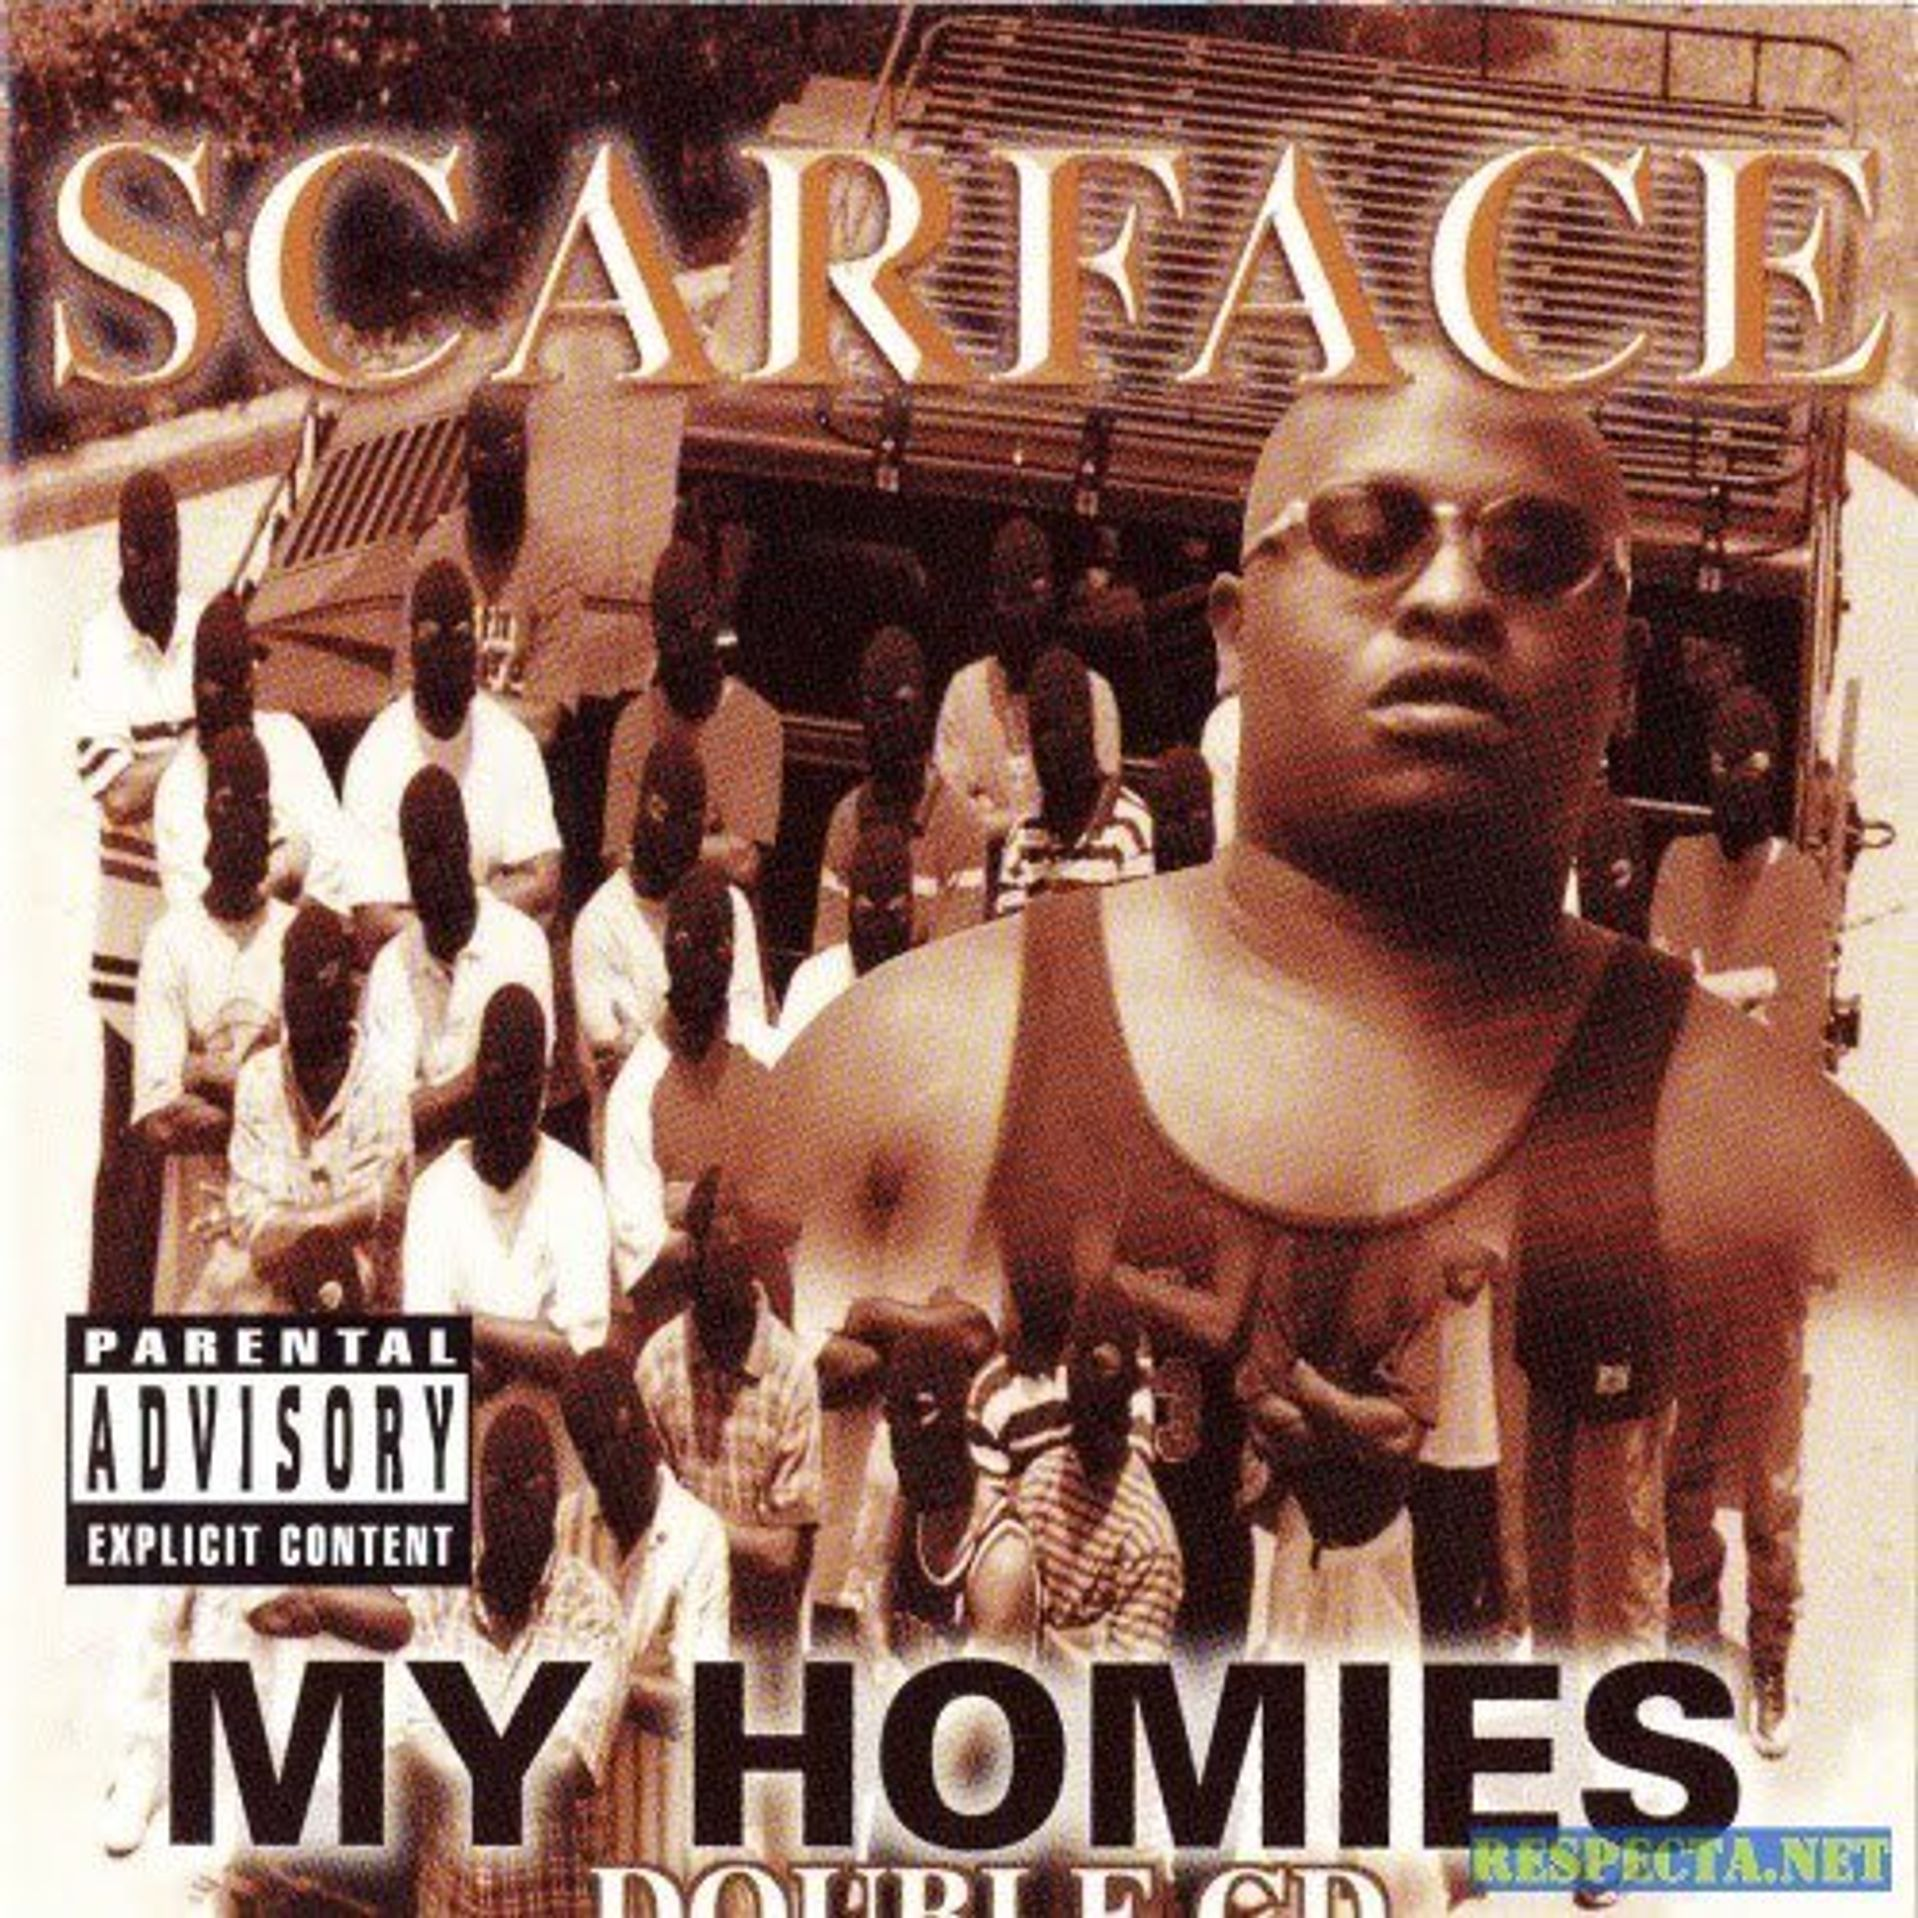 Album Title: My Homies by: Scarface